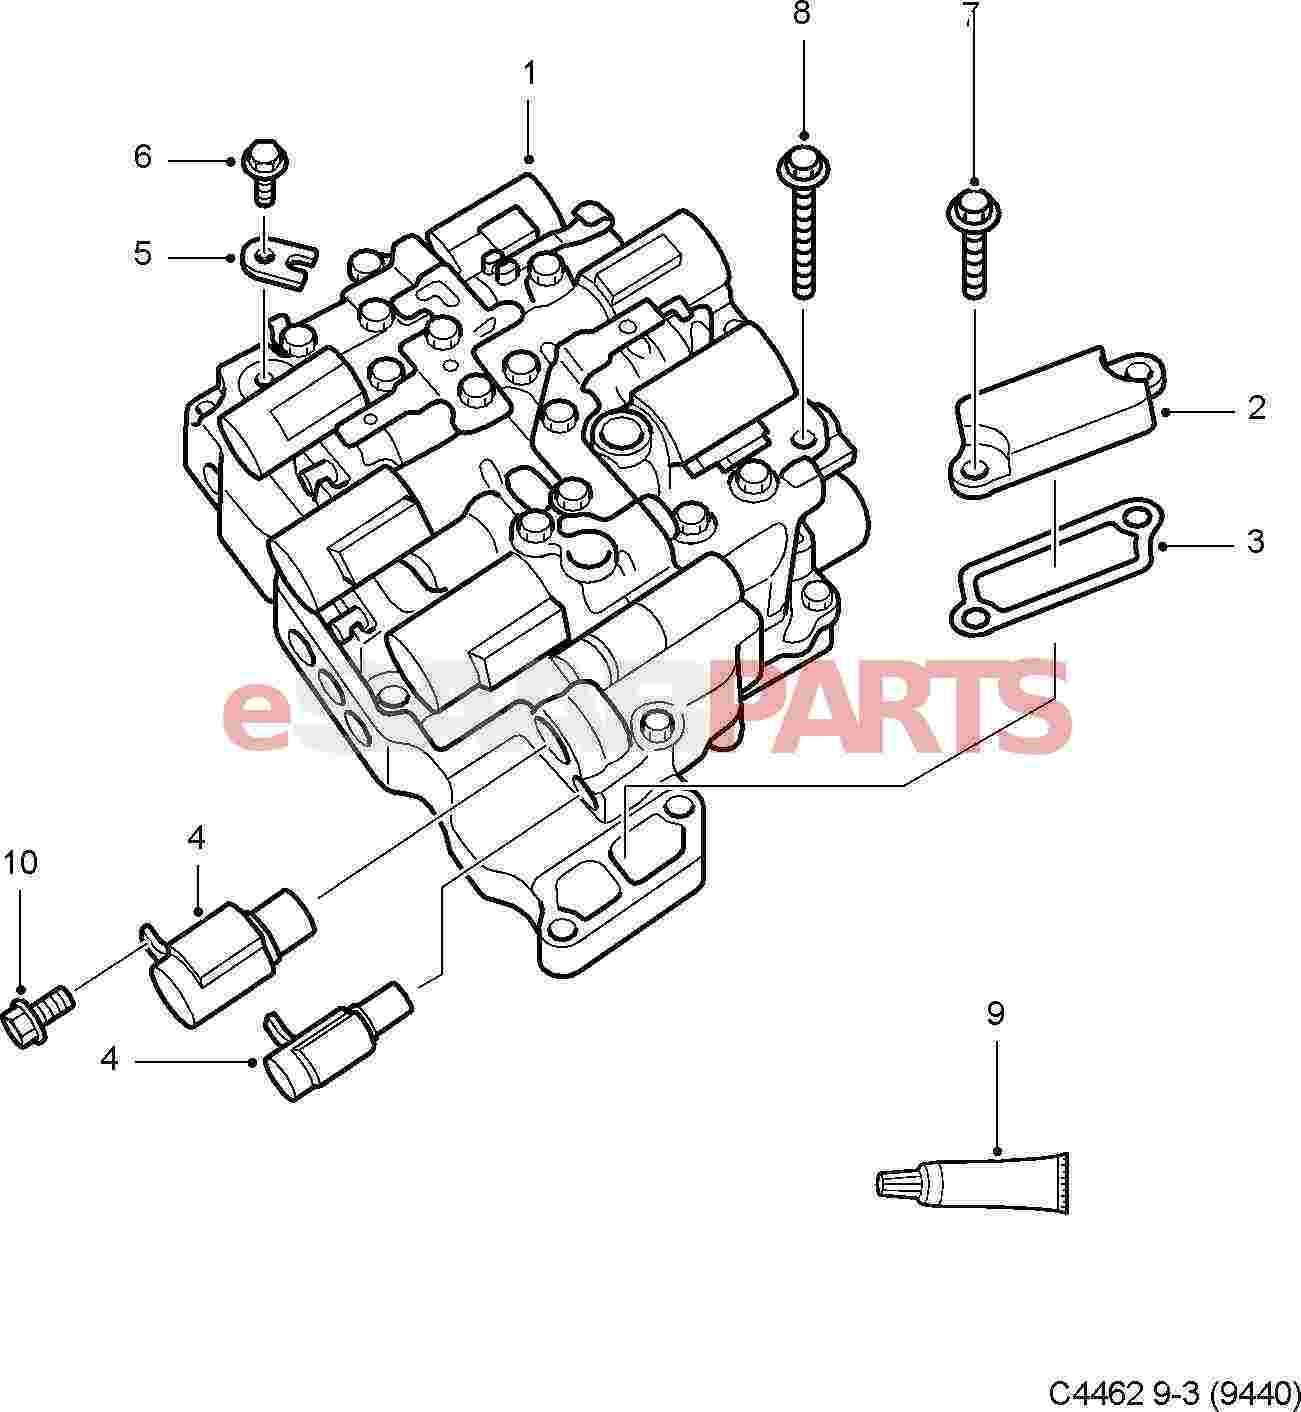 1999 Saab 9 3 2 0l Turbo Serpentine Belt Diagram • Wiring